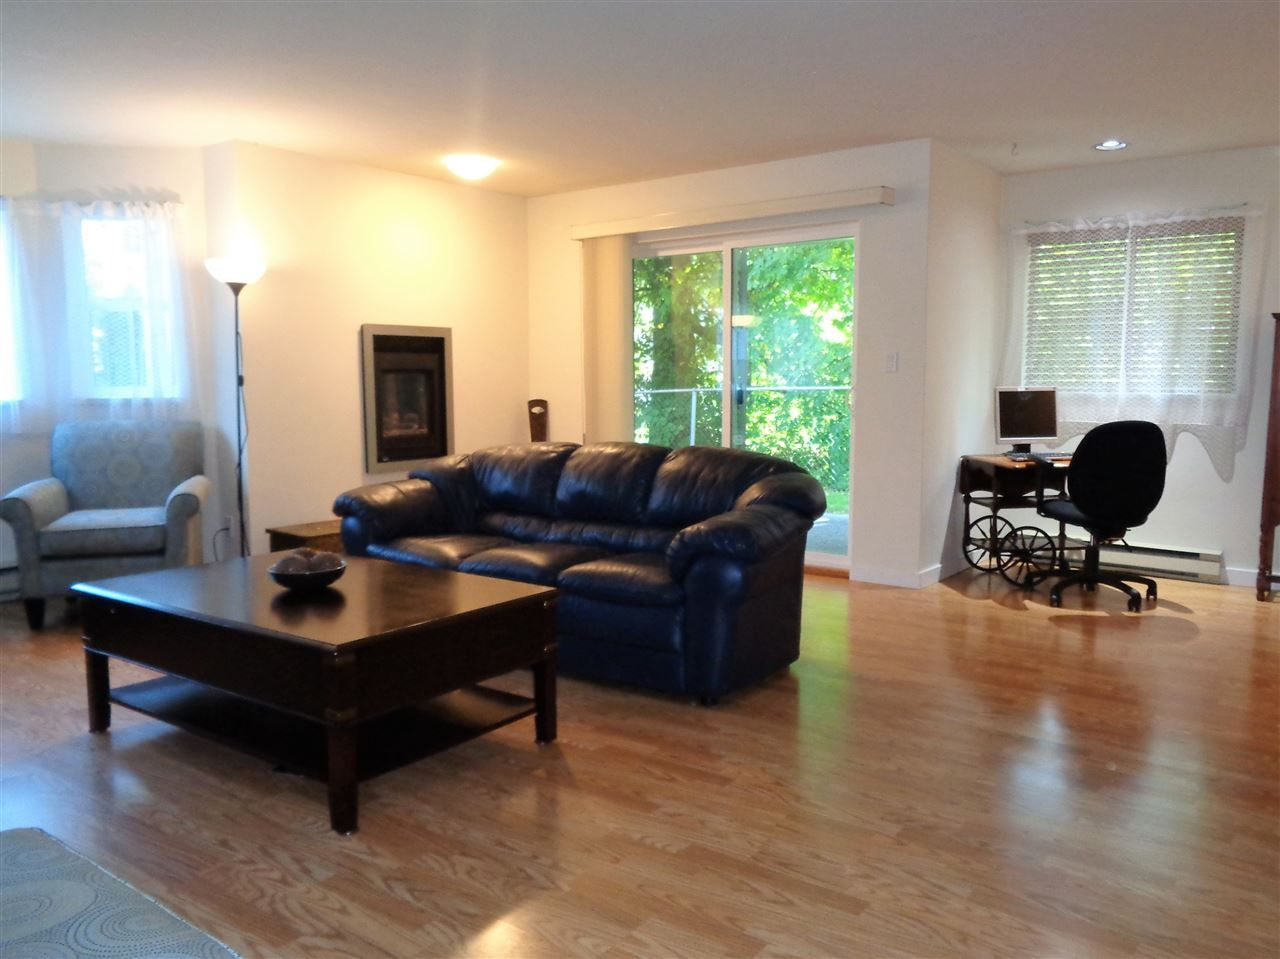 Main Photo: 102 46966 YALE Road in Chilliwack: Chilliwack E Young-Yale Condo for sale : MLS®# R2430782